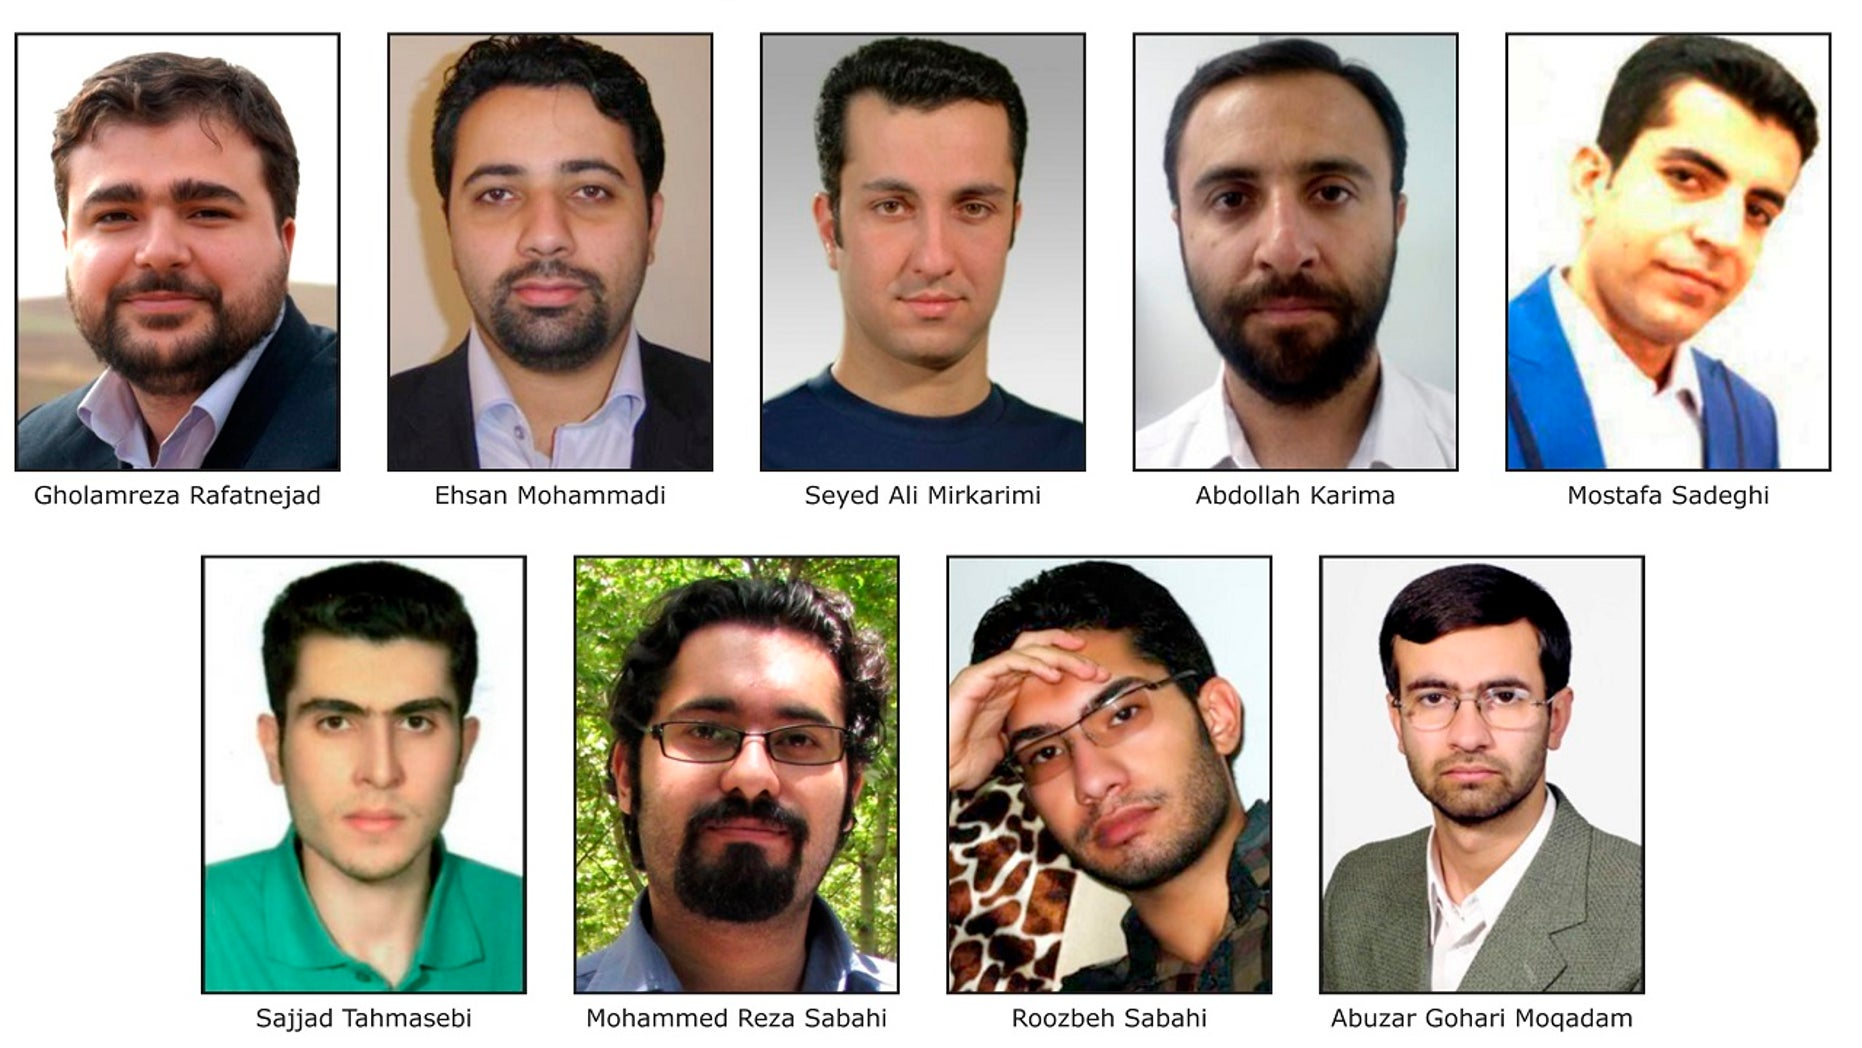 9 Iranians took part in a government-sponsored hacking scheme that pilfered sensitive information from hundreds of universities, private companies and government agencies, according to the FBI.